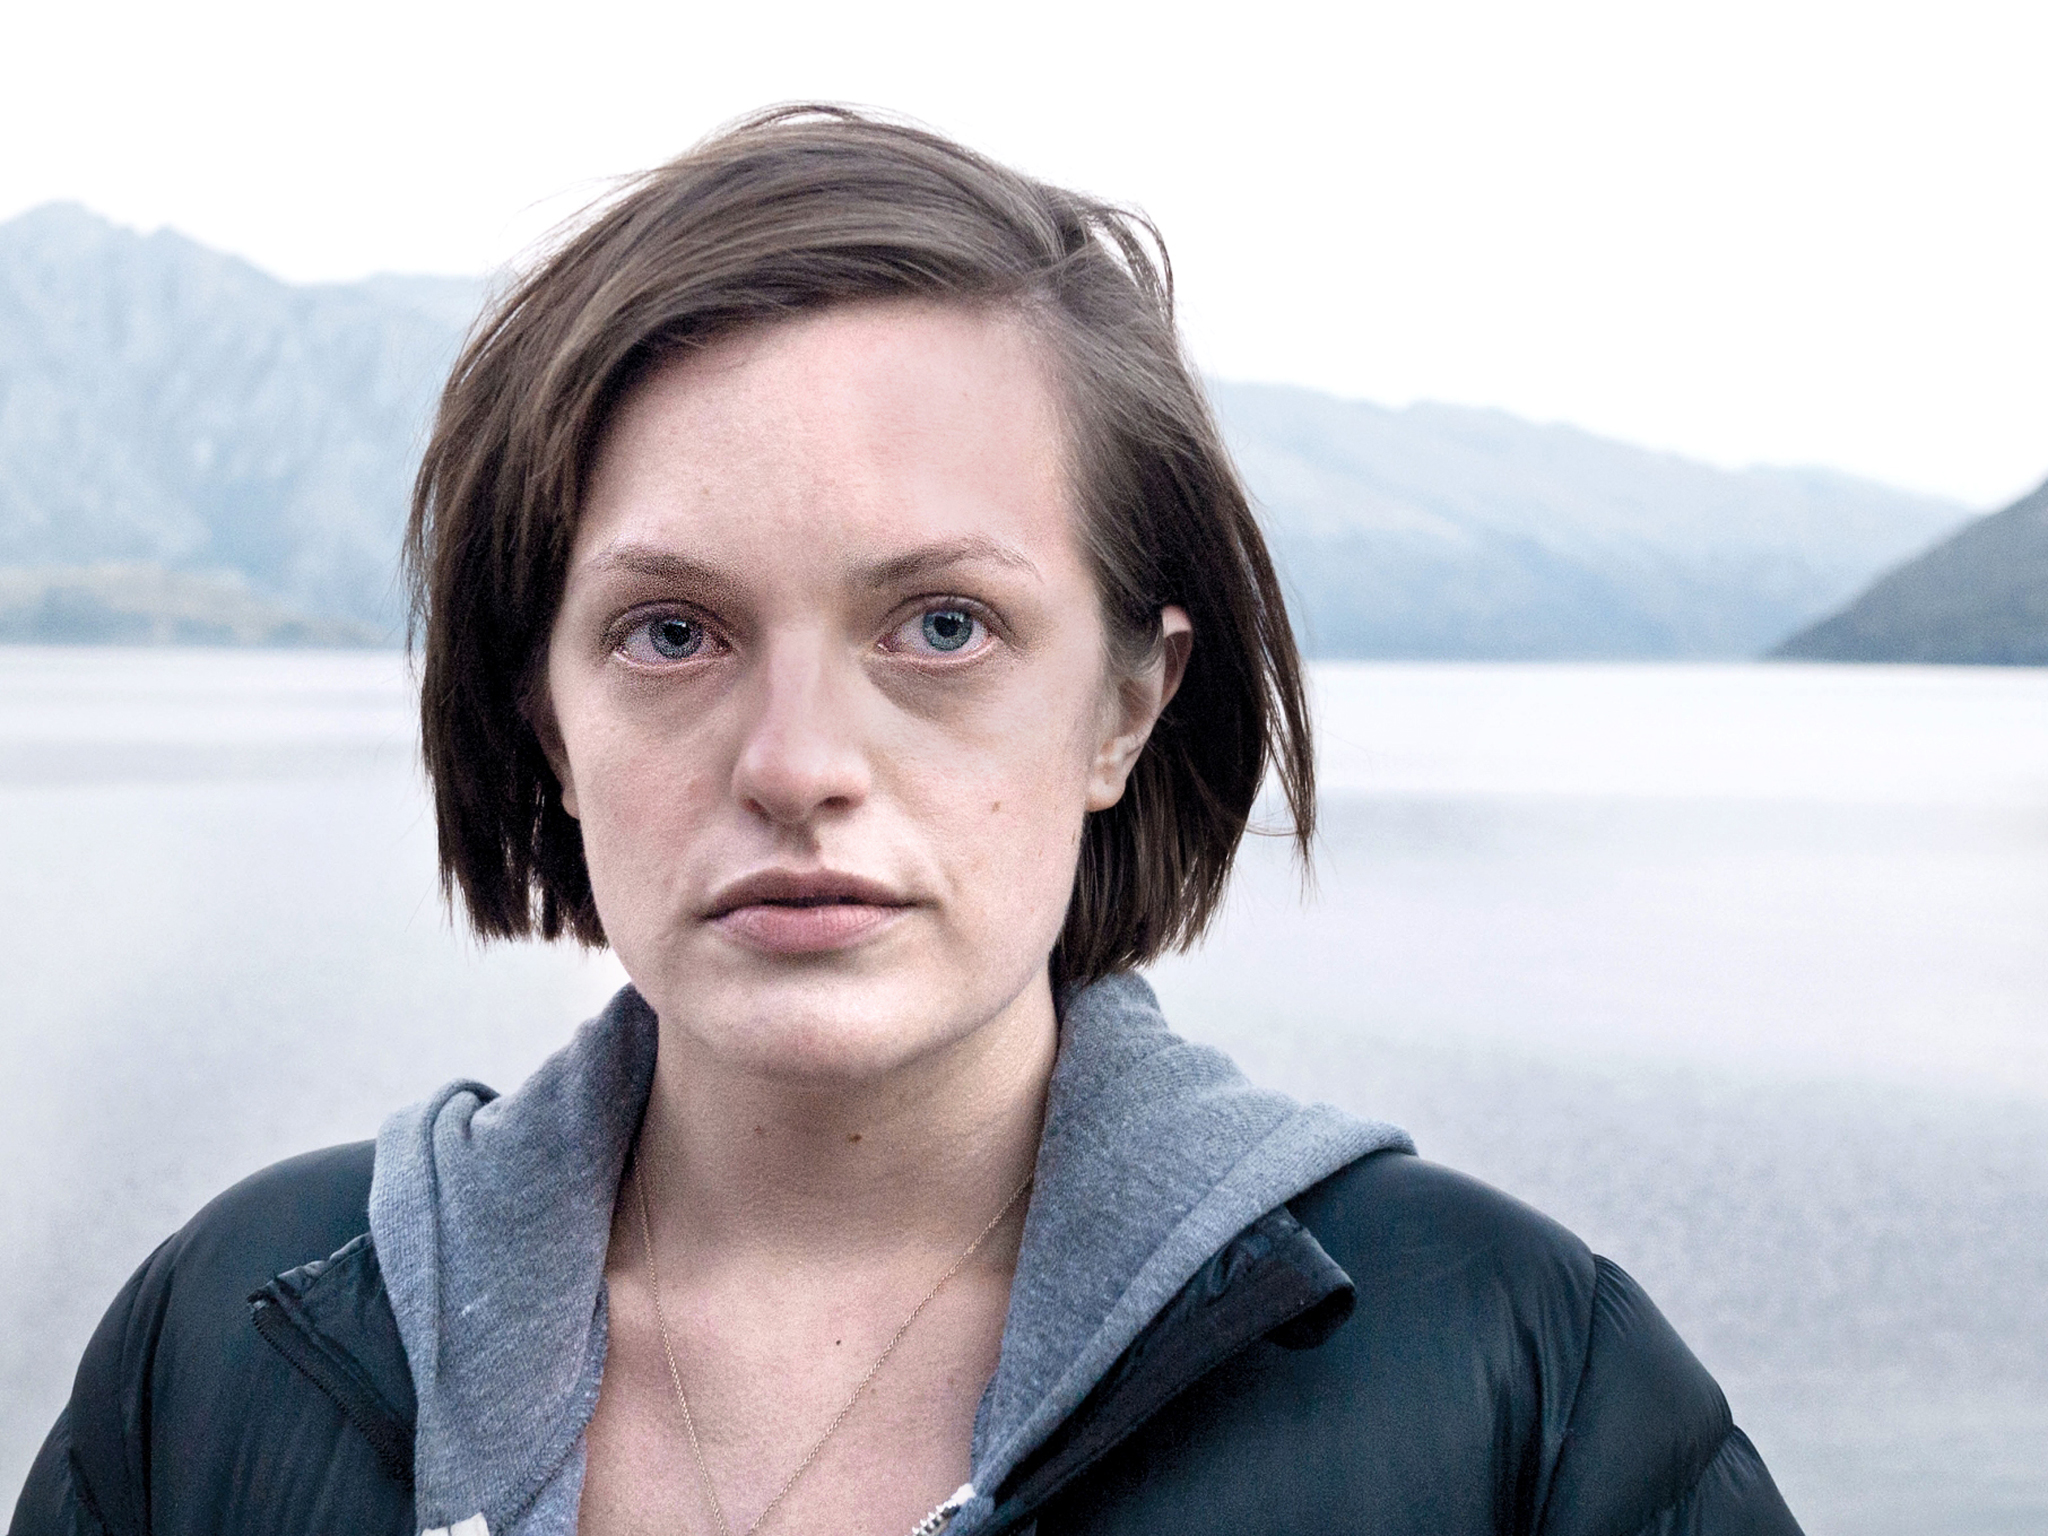 Elisabeth Moss vai se juntar a Gwendoline Christie na 2ª temporada de Top of the Lake